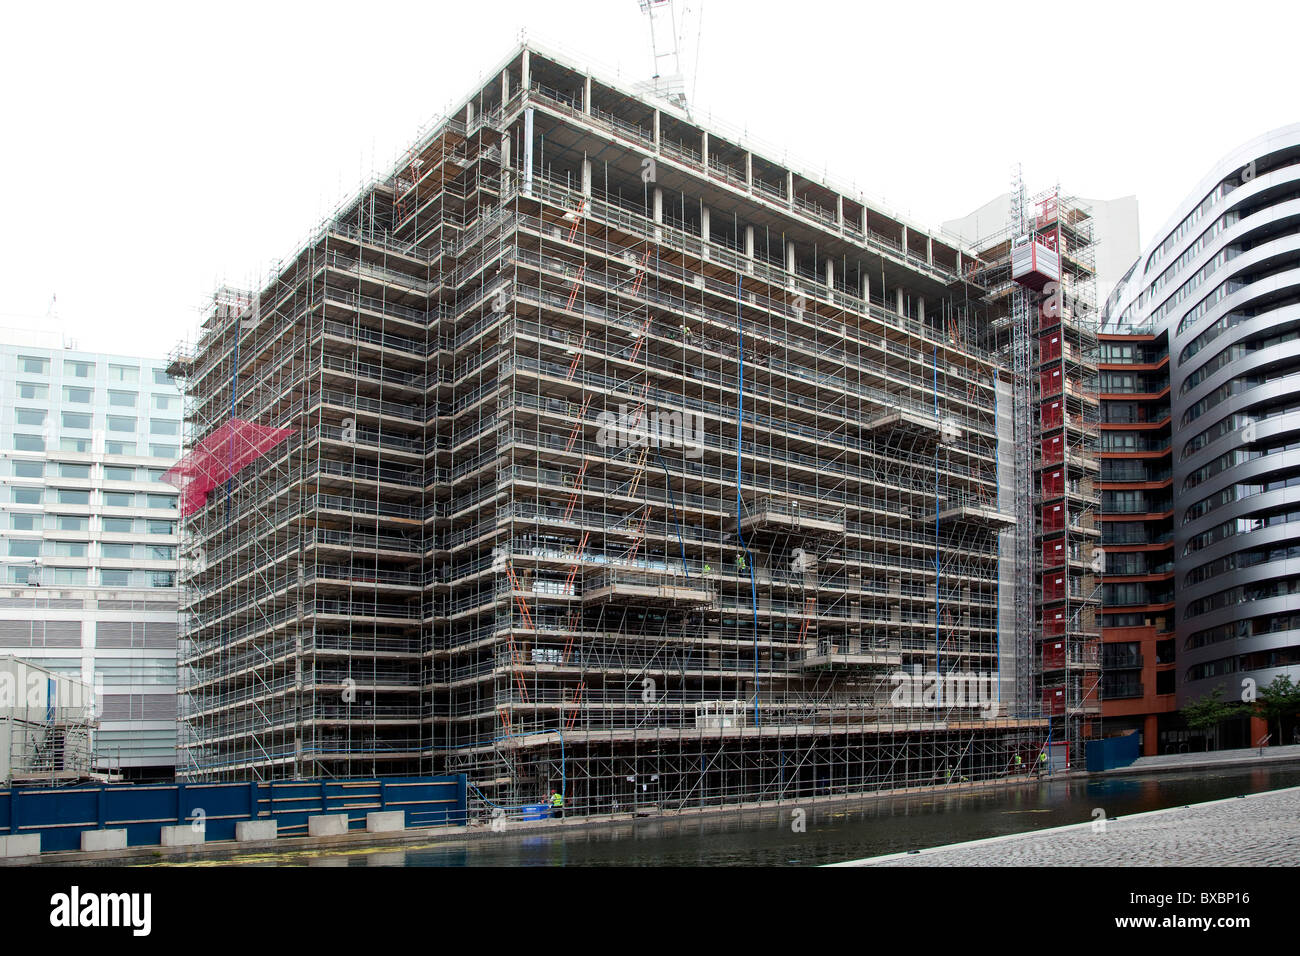 Construction site, house with scaffolding in London, England, United Kingdom, Europe Stock Photo